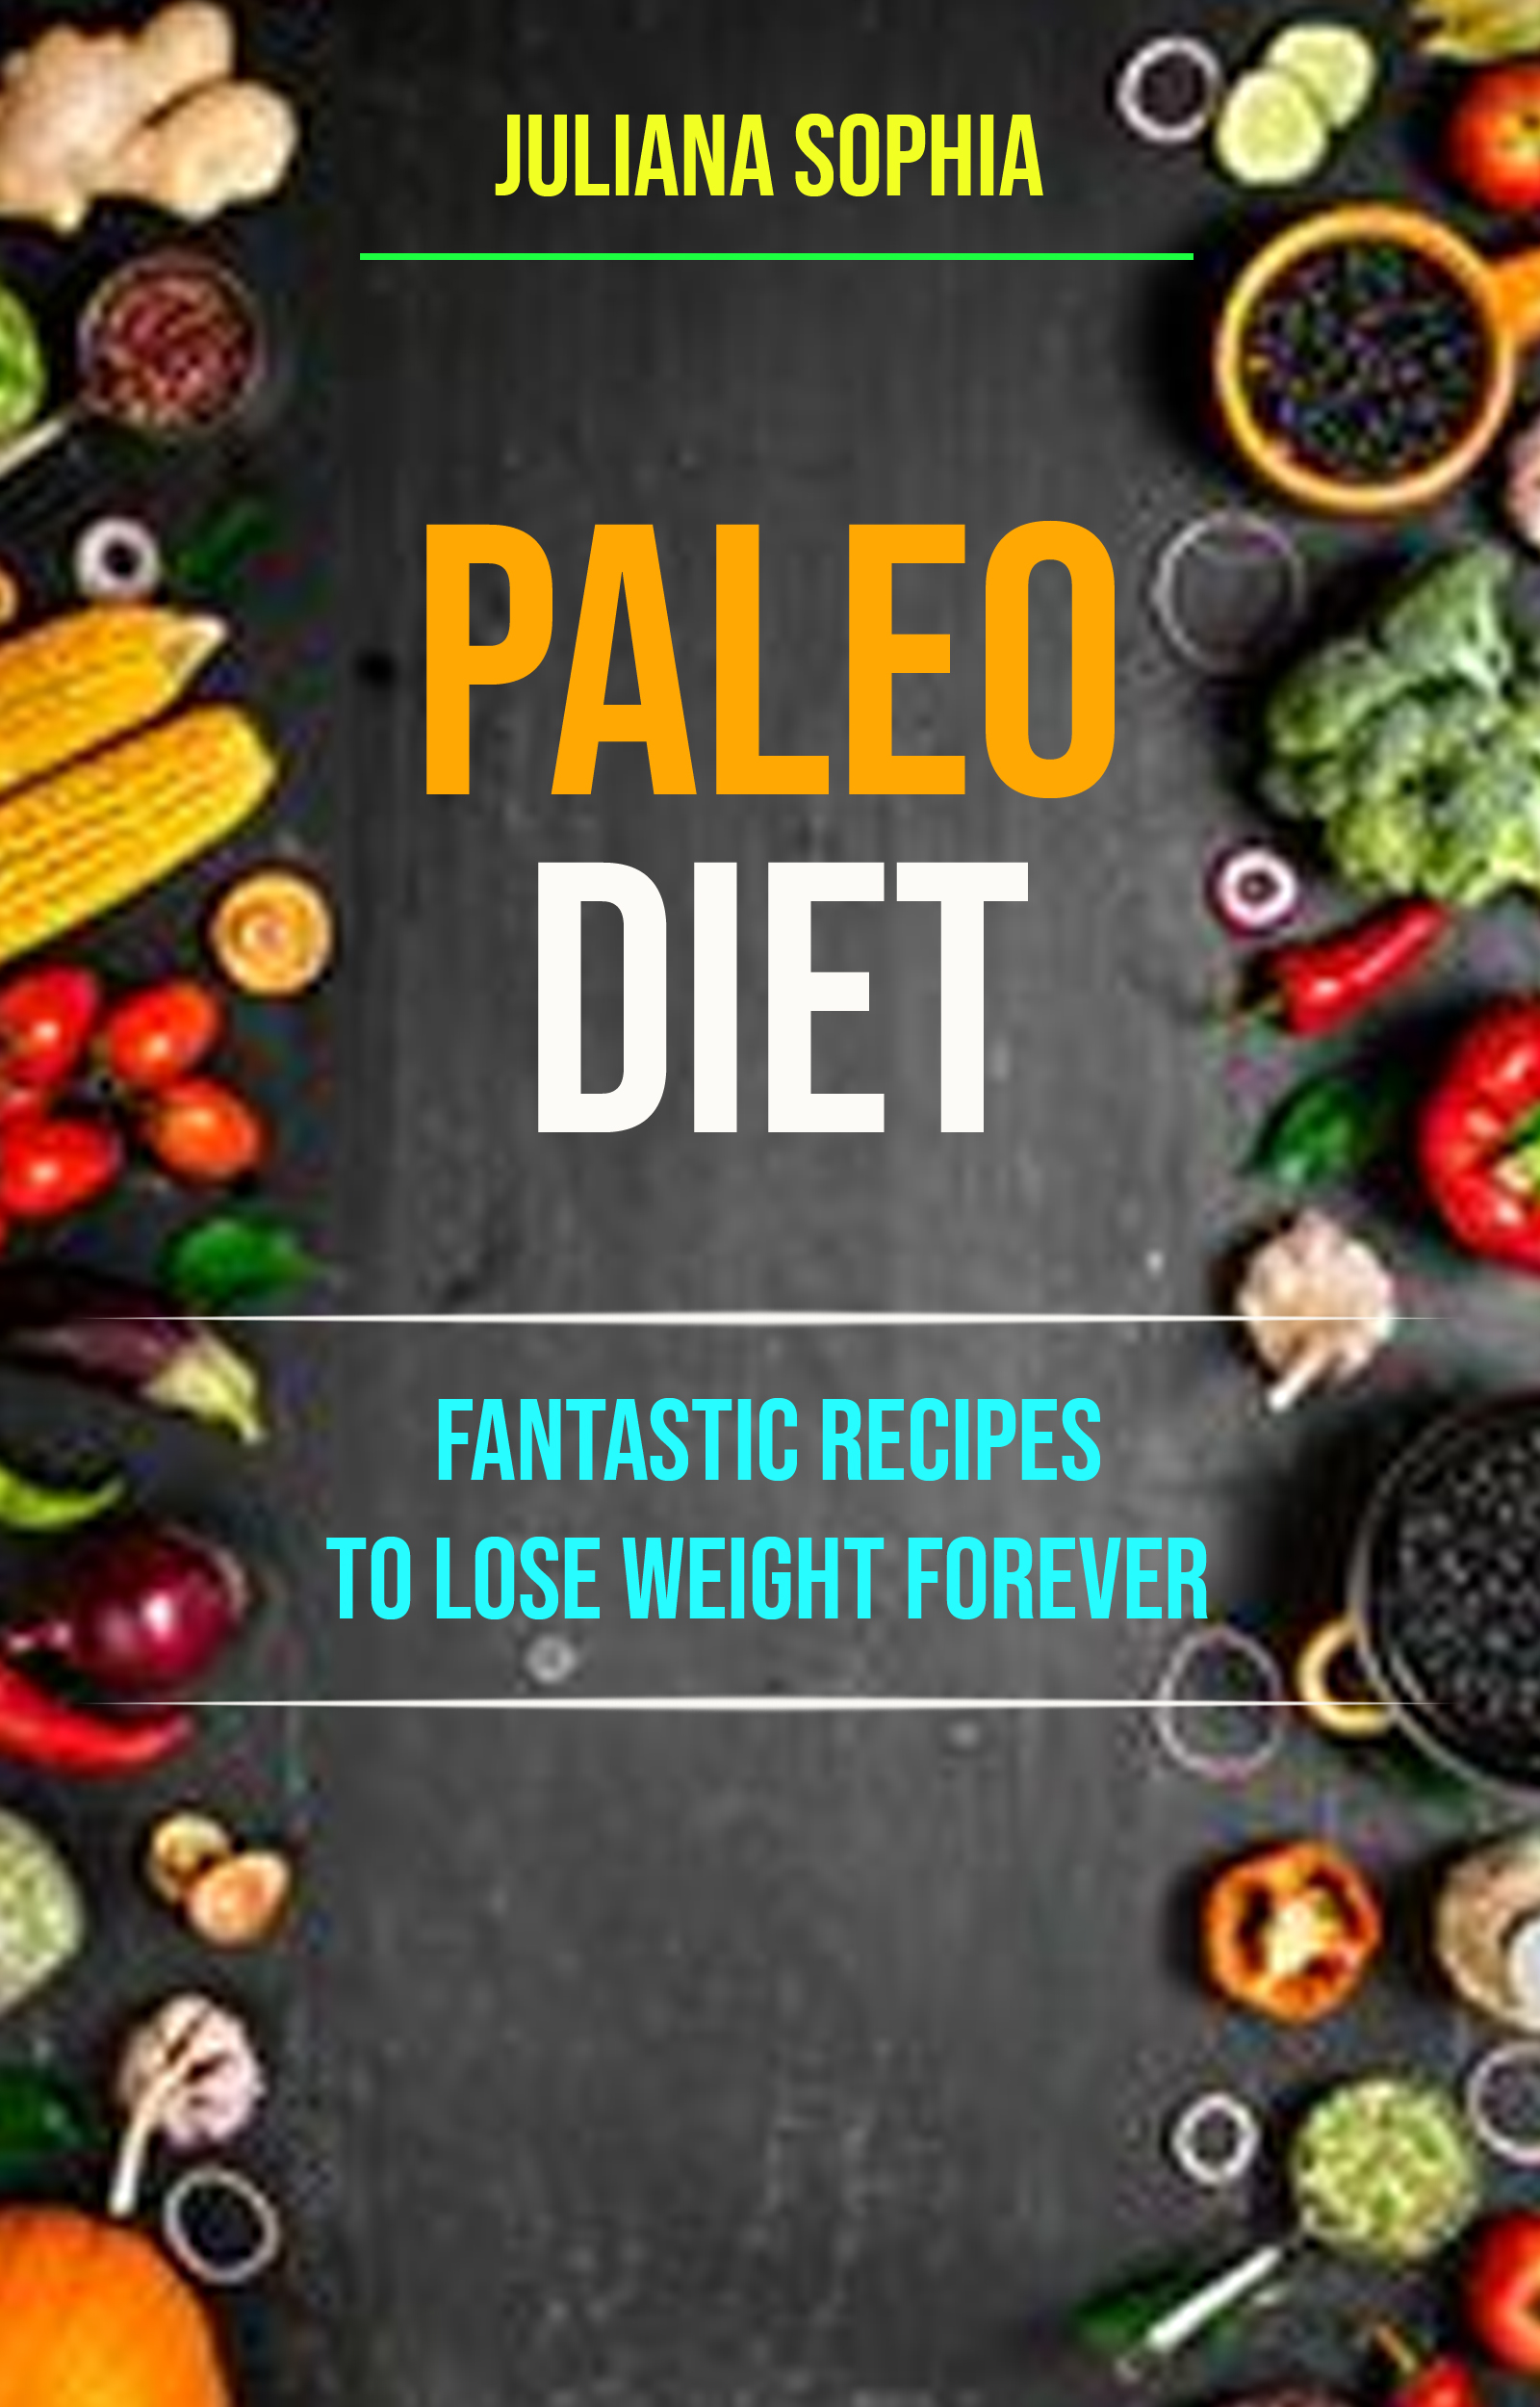 Paleo diet: fantastic recipes to lose weight forever